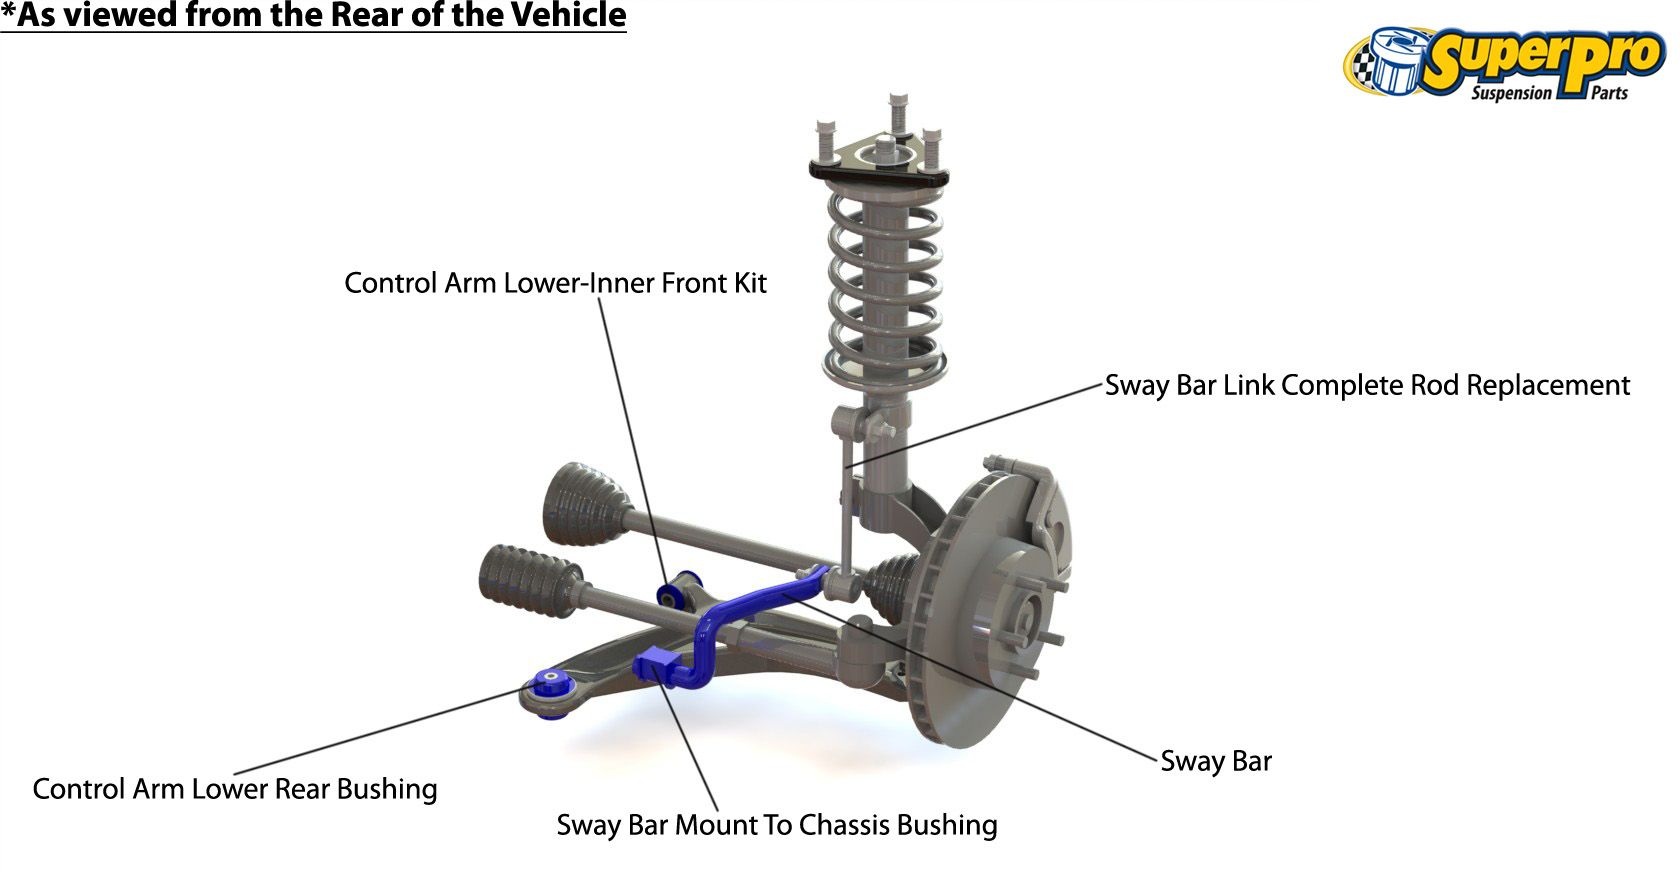 medium resolution of front suspension diagram for subaru impreza wrx sti gv 2007 2011